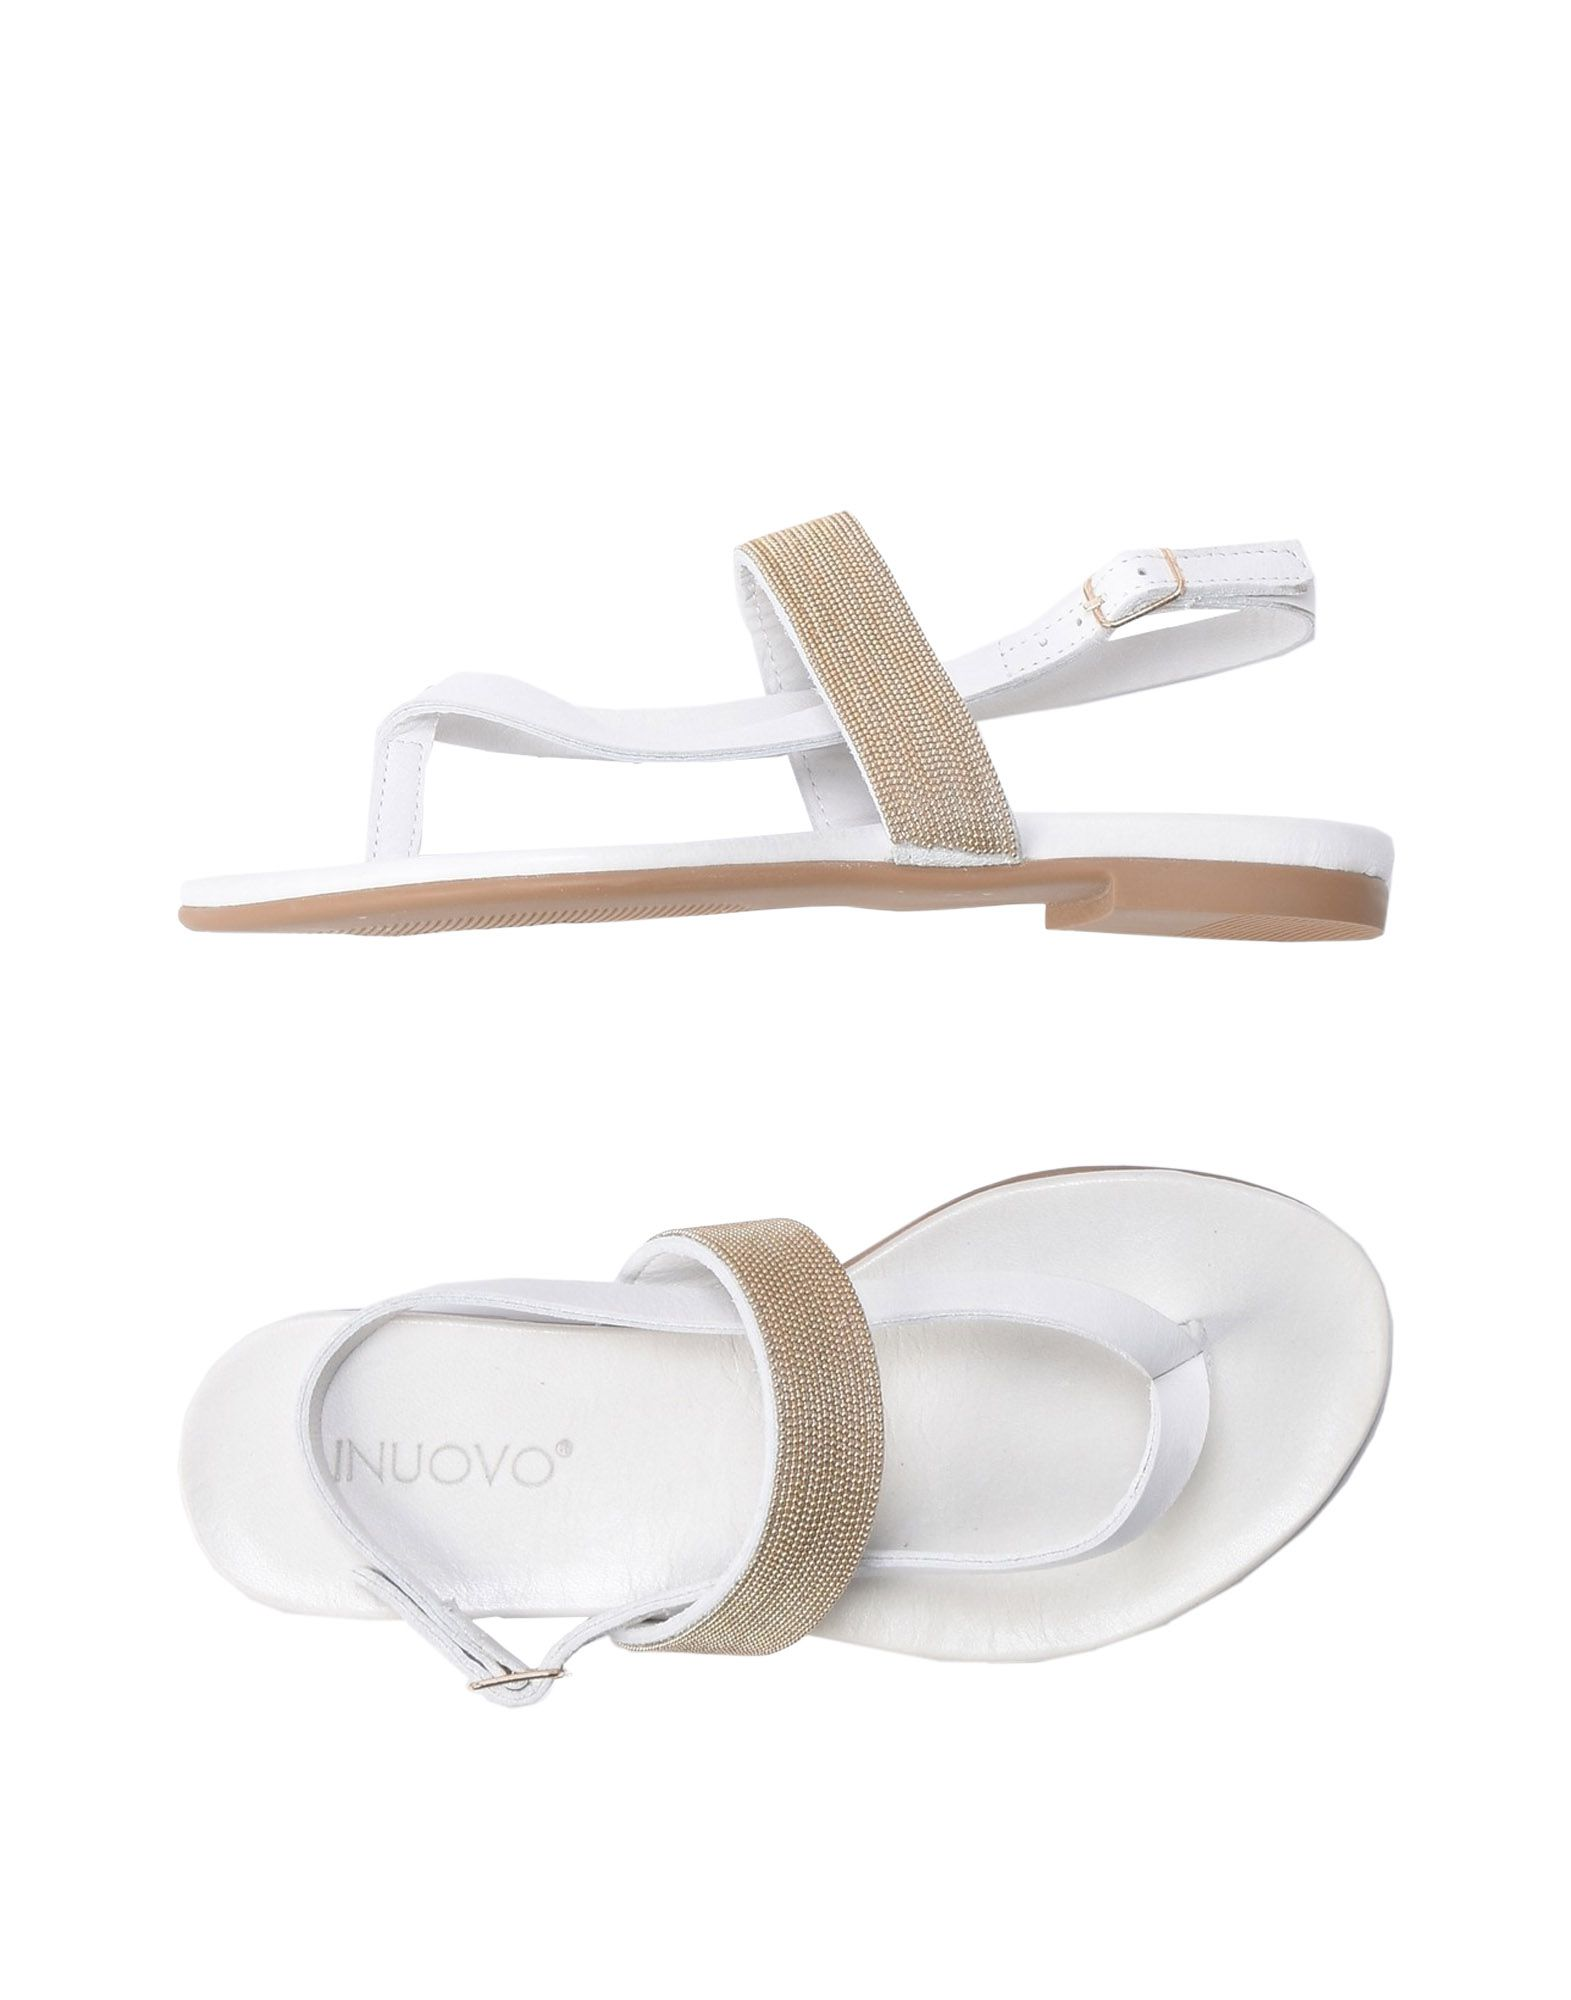 Tongs Inuovo Femme - Tongs Inuovo sur